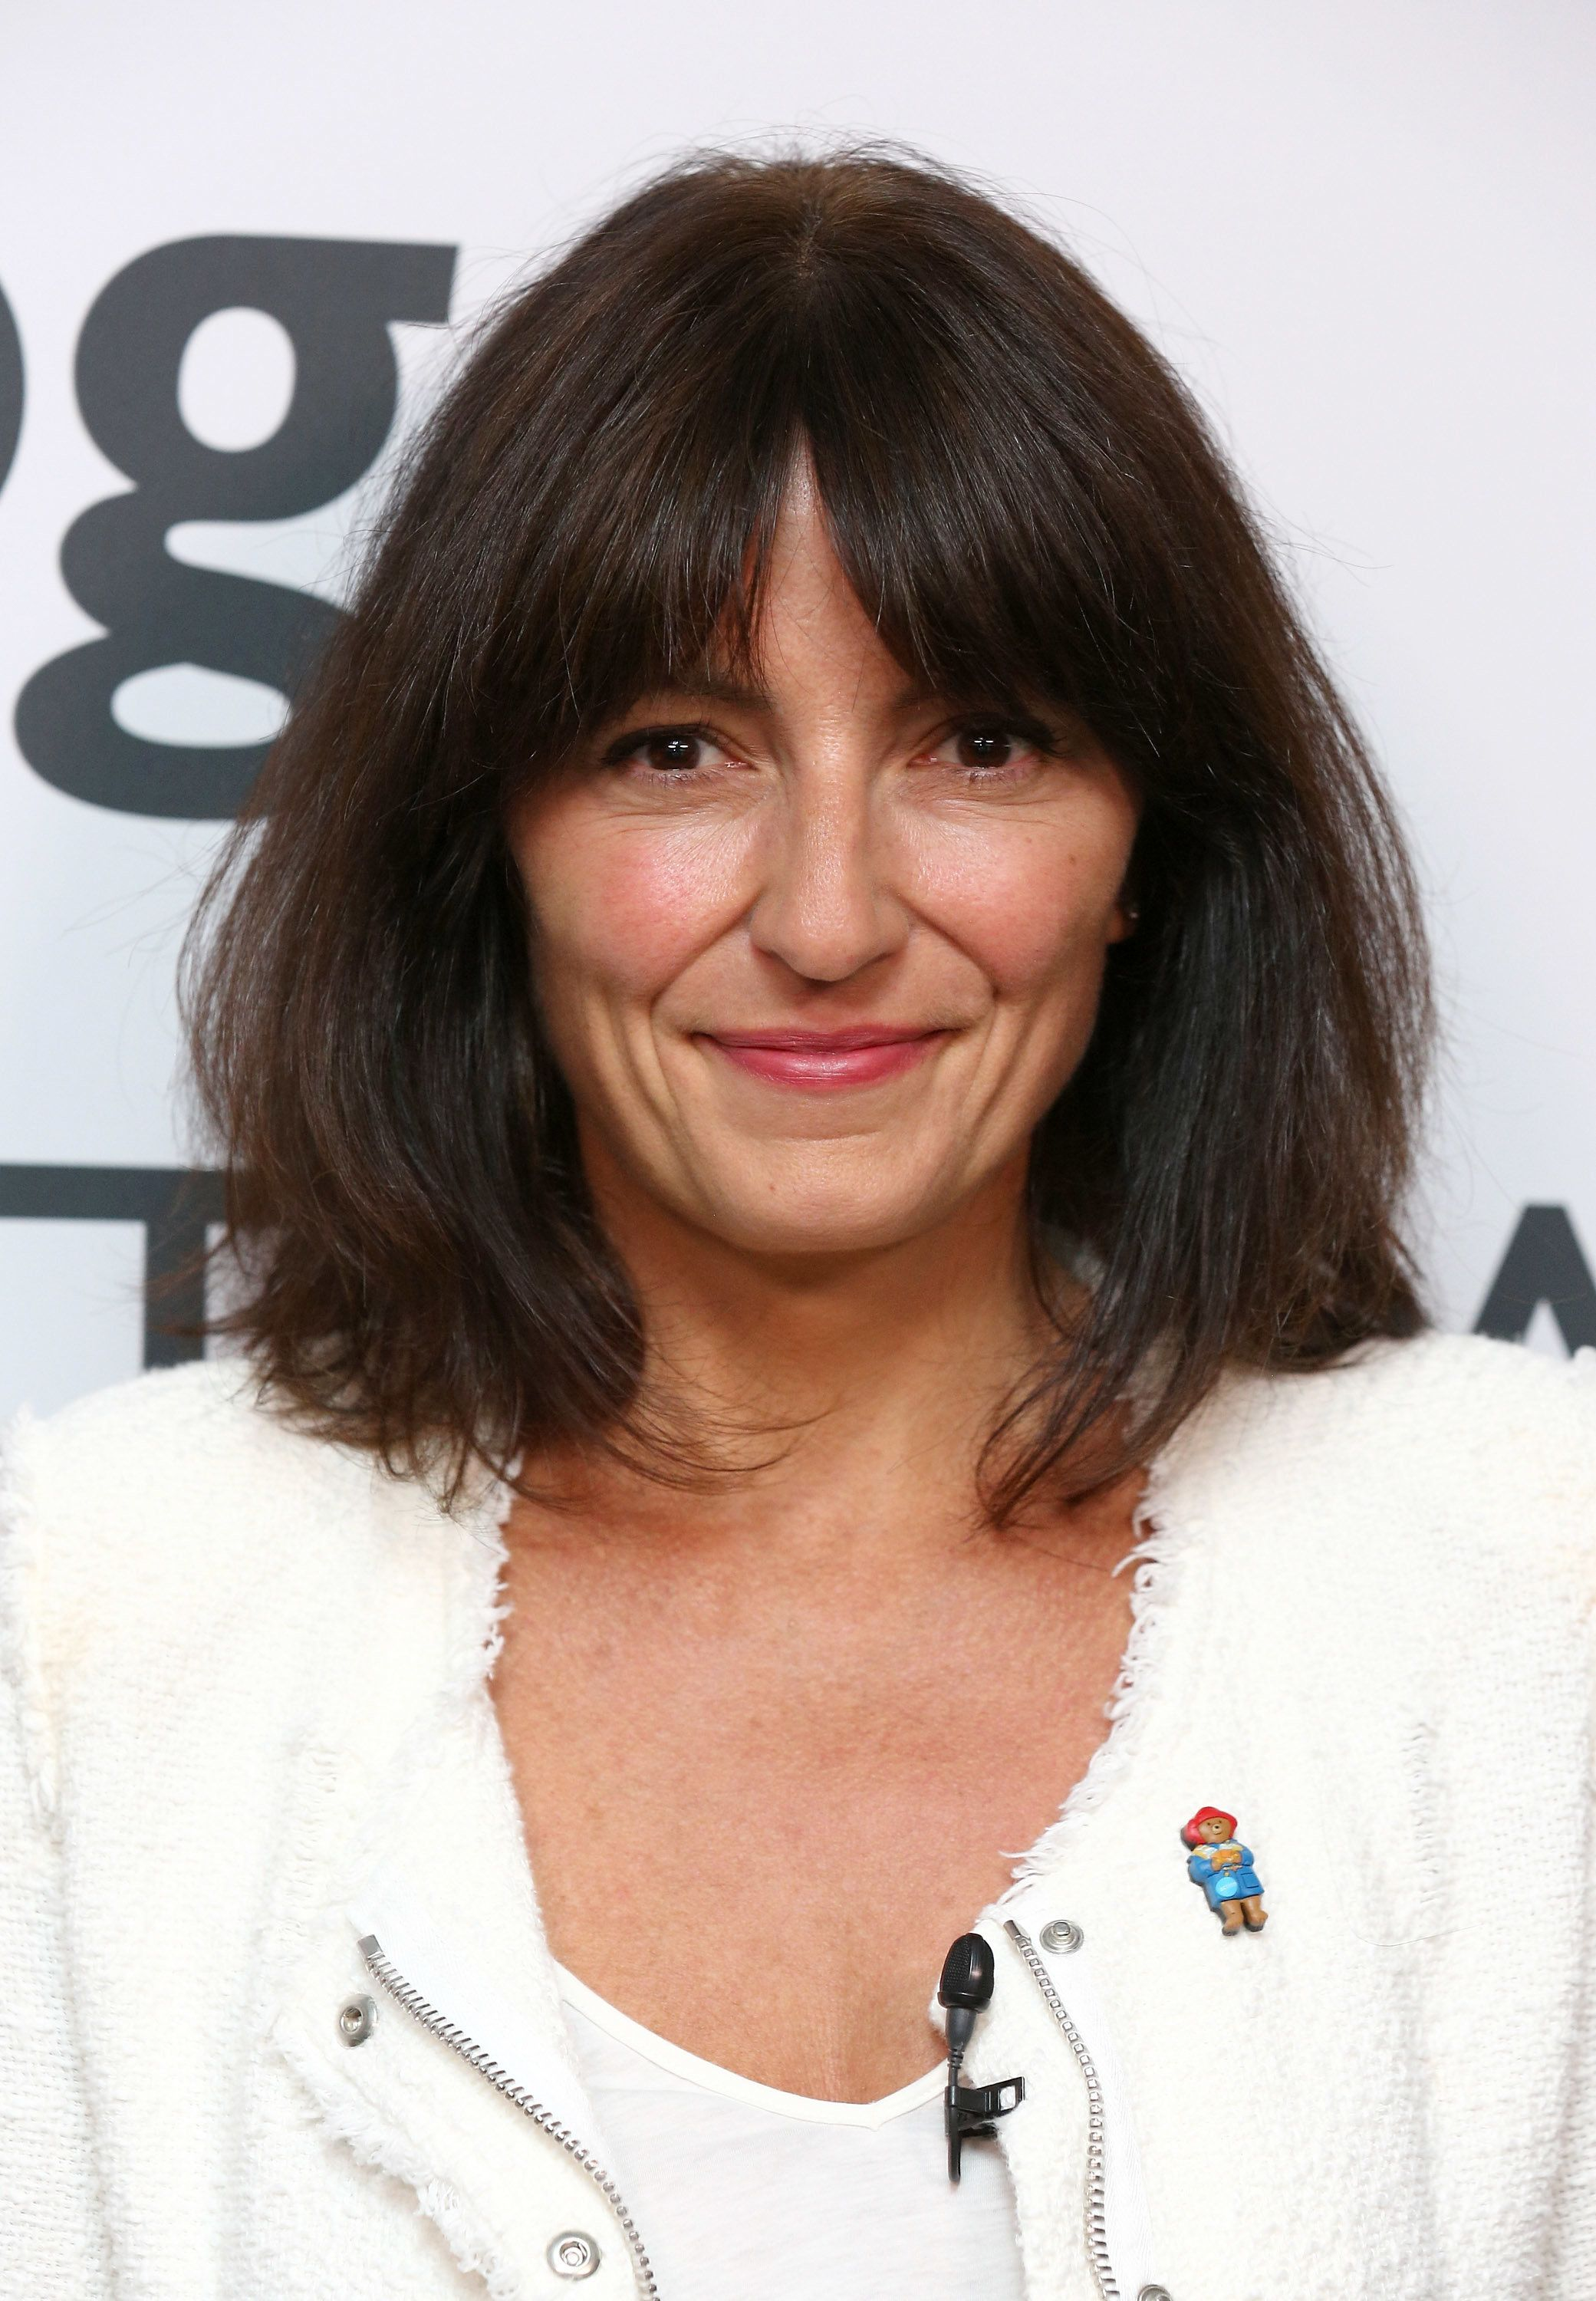 Davina McCall Admits She Will 'Never Be Recovered' From Past Addiction